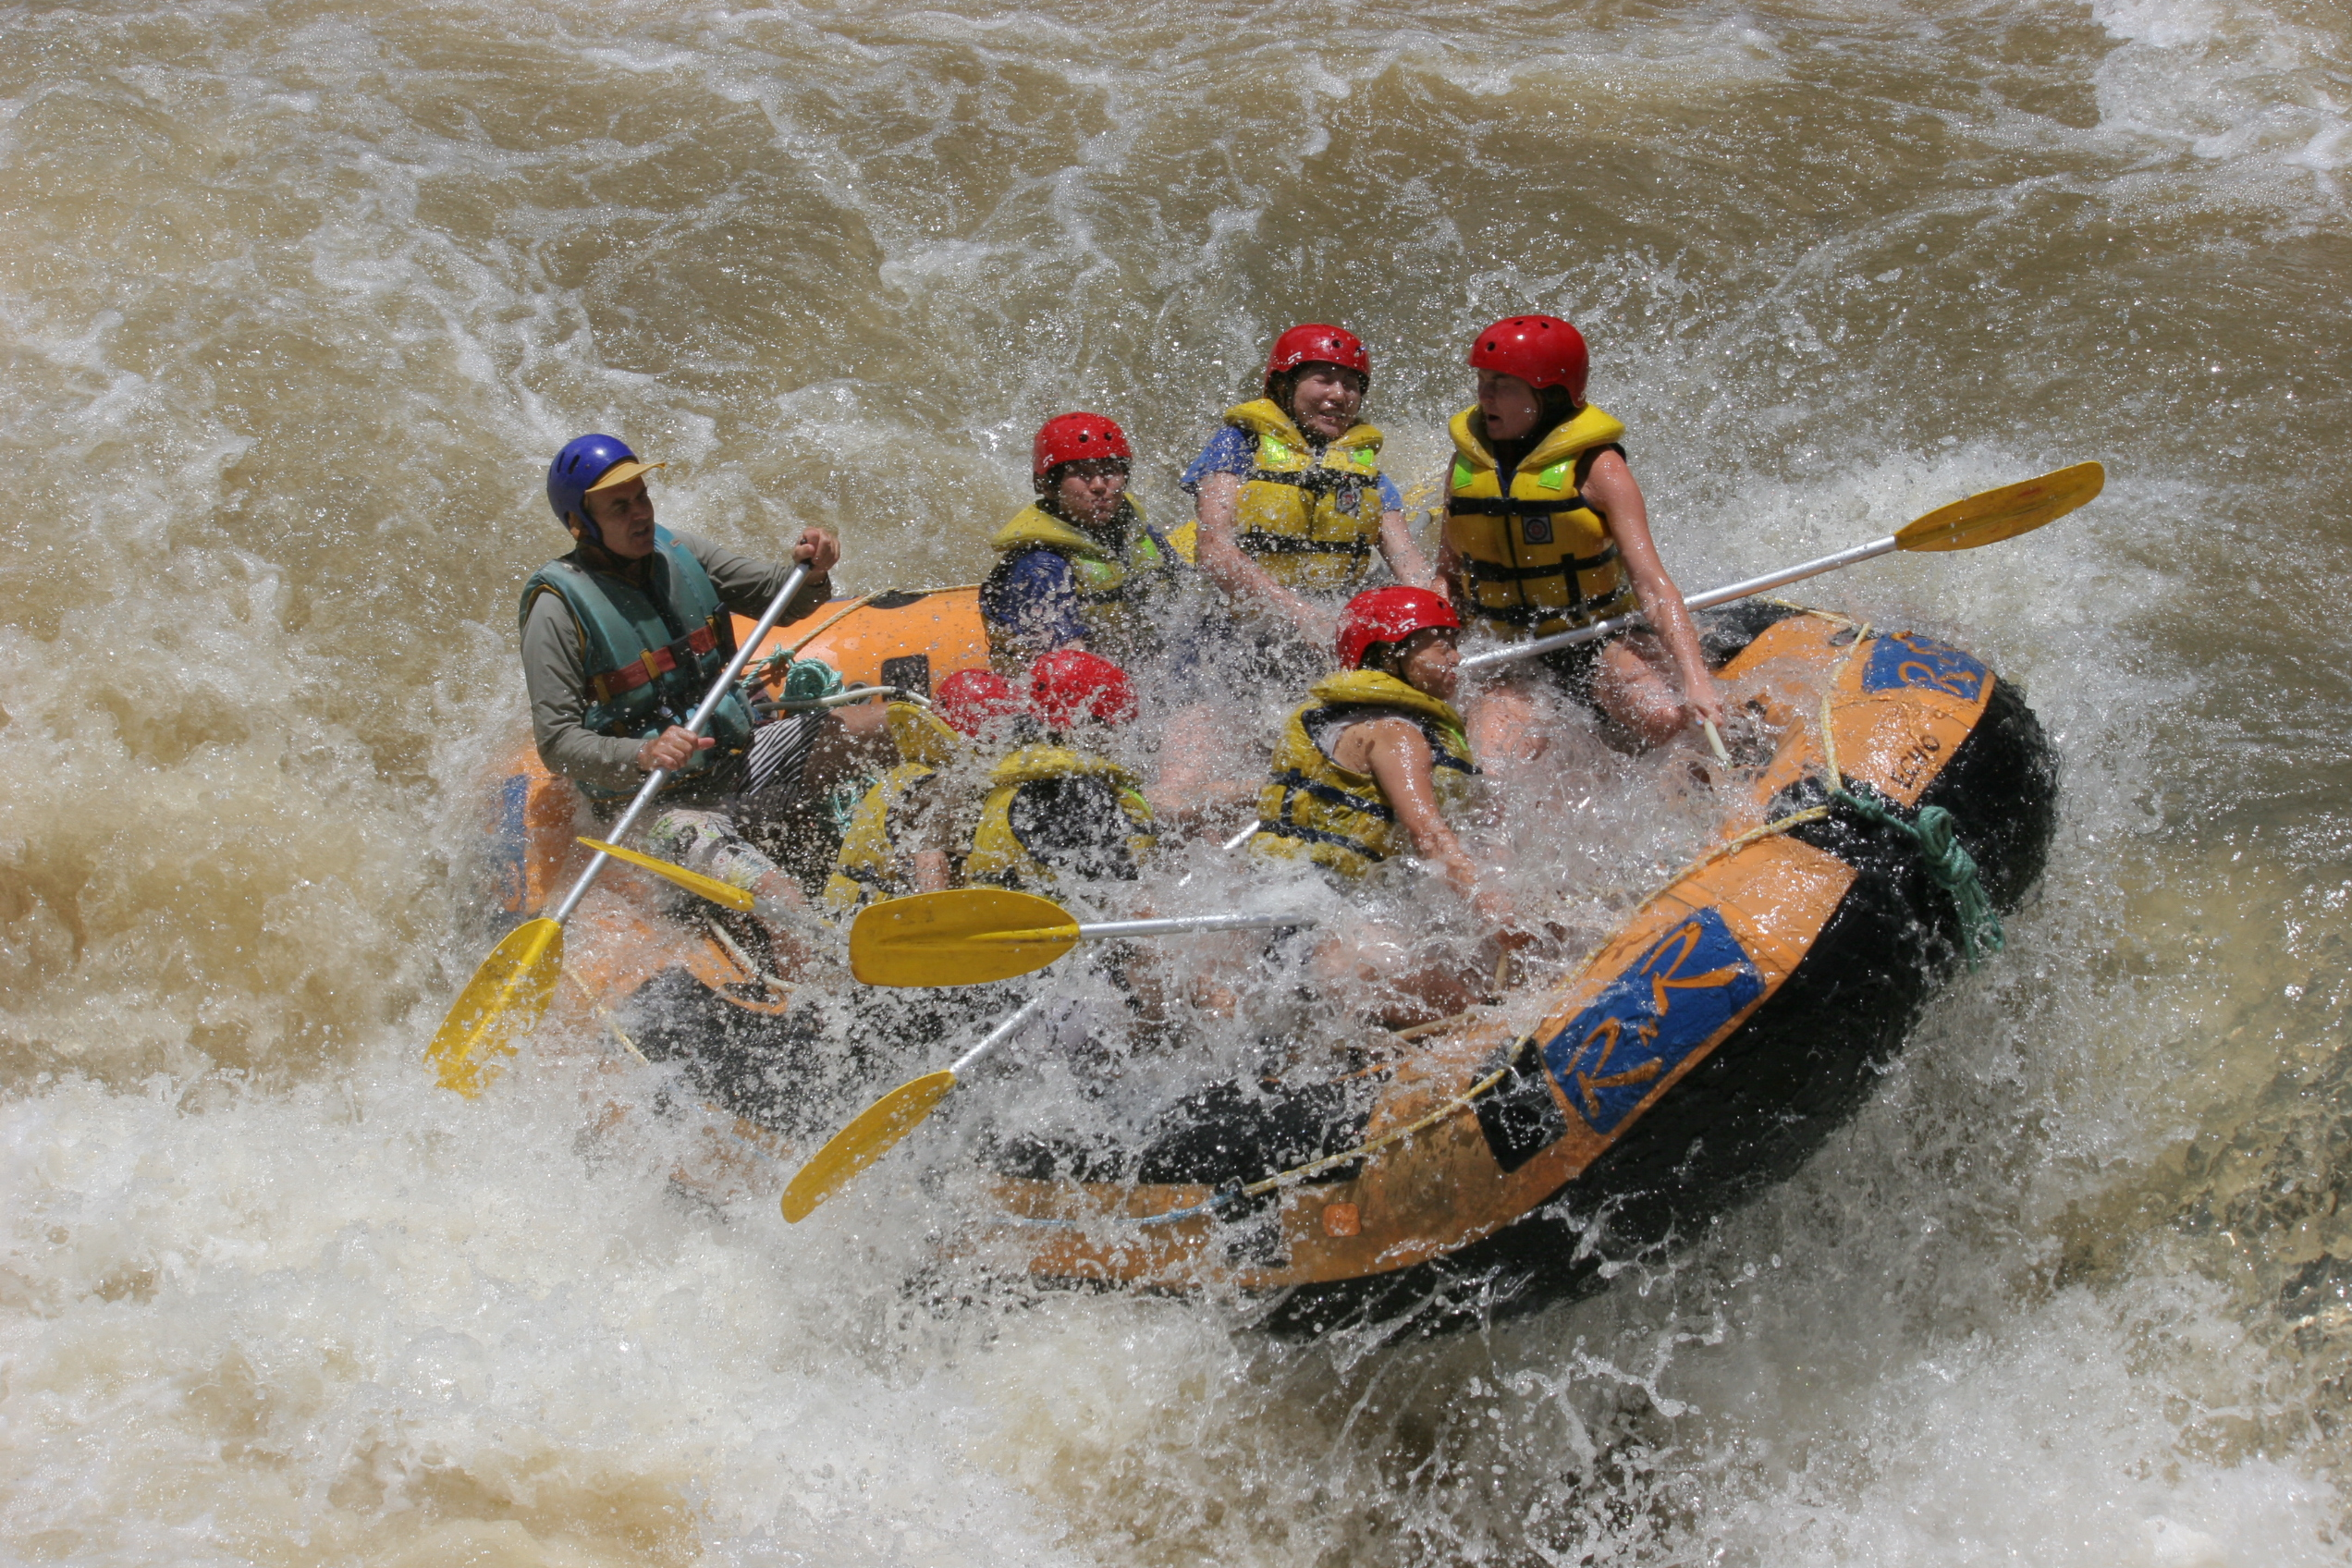 Full Day White Water Rafting - Tully River